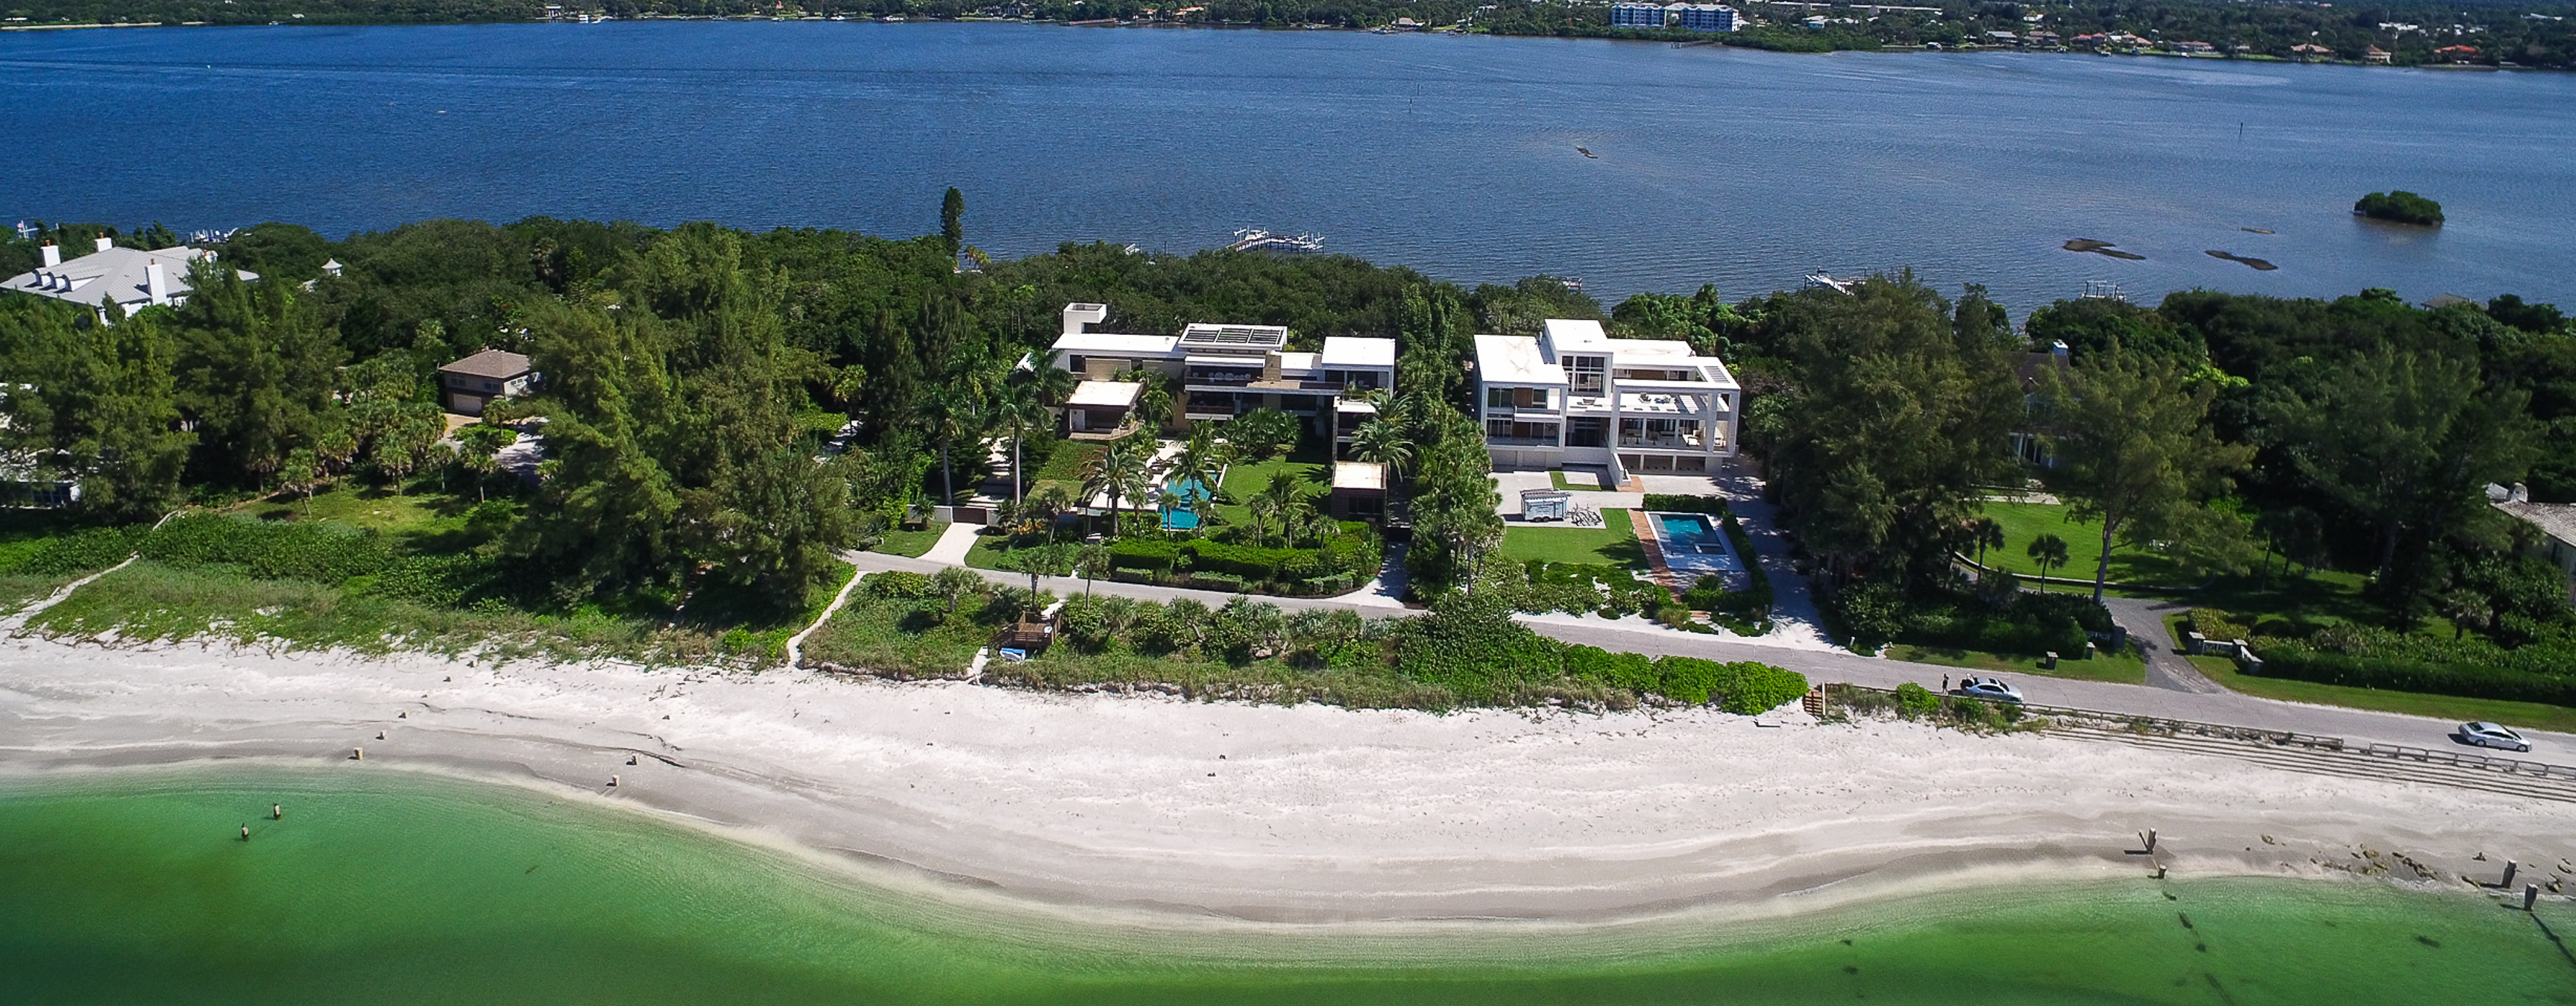 Casey Key Waterfront Homes for Sale